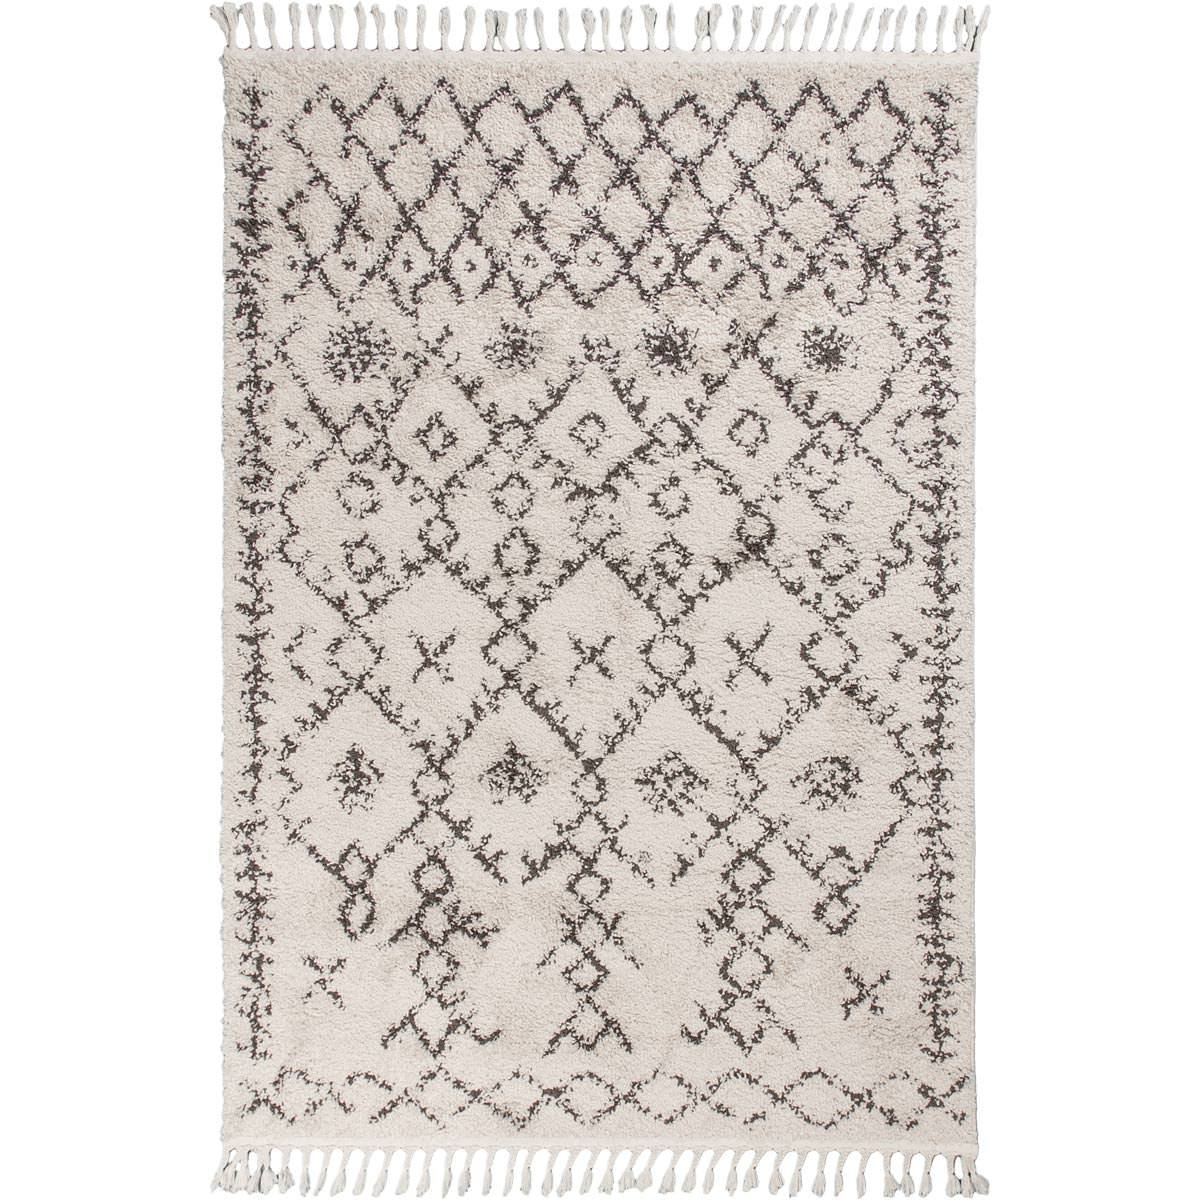 Shaggy Marrakech Rug 06 Cream/Black 1